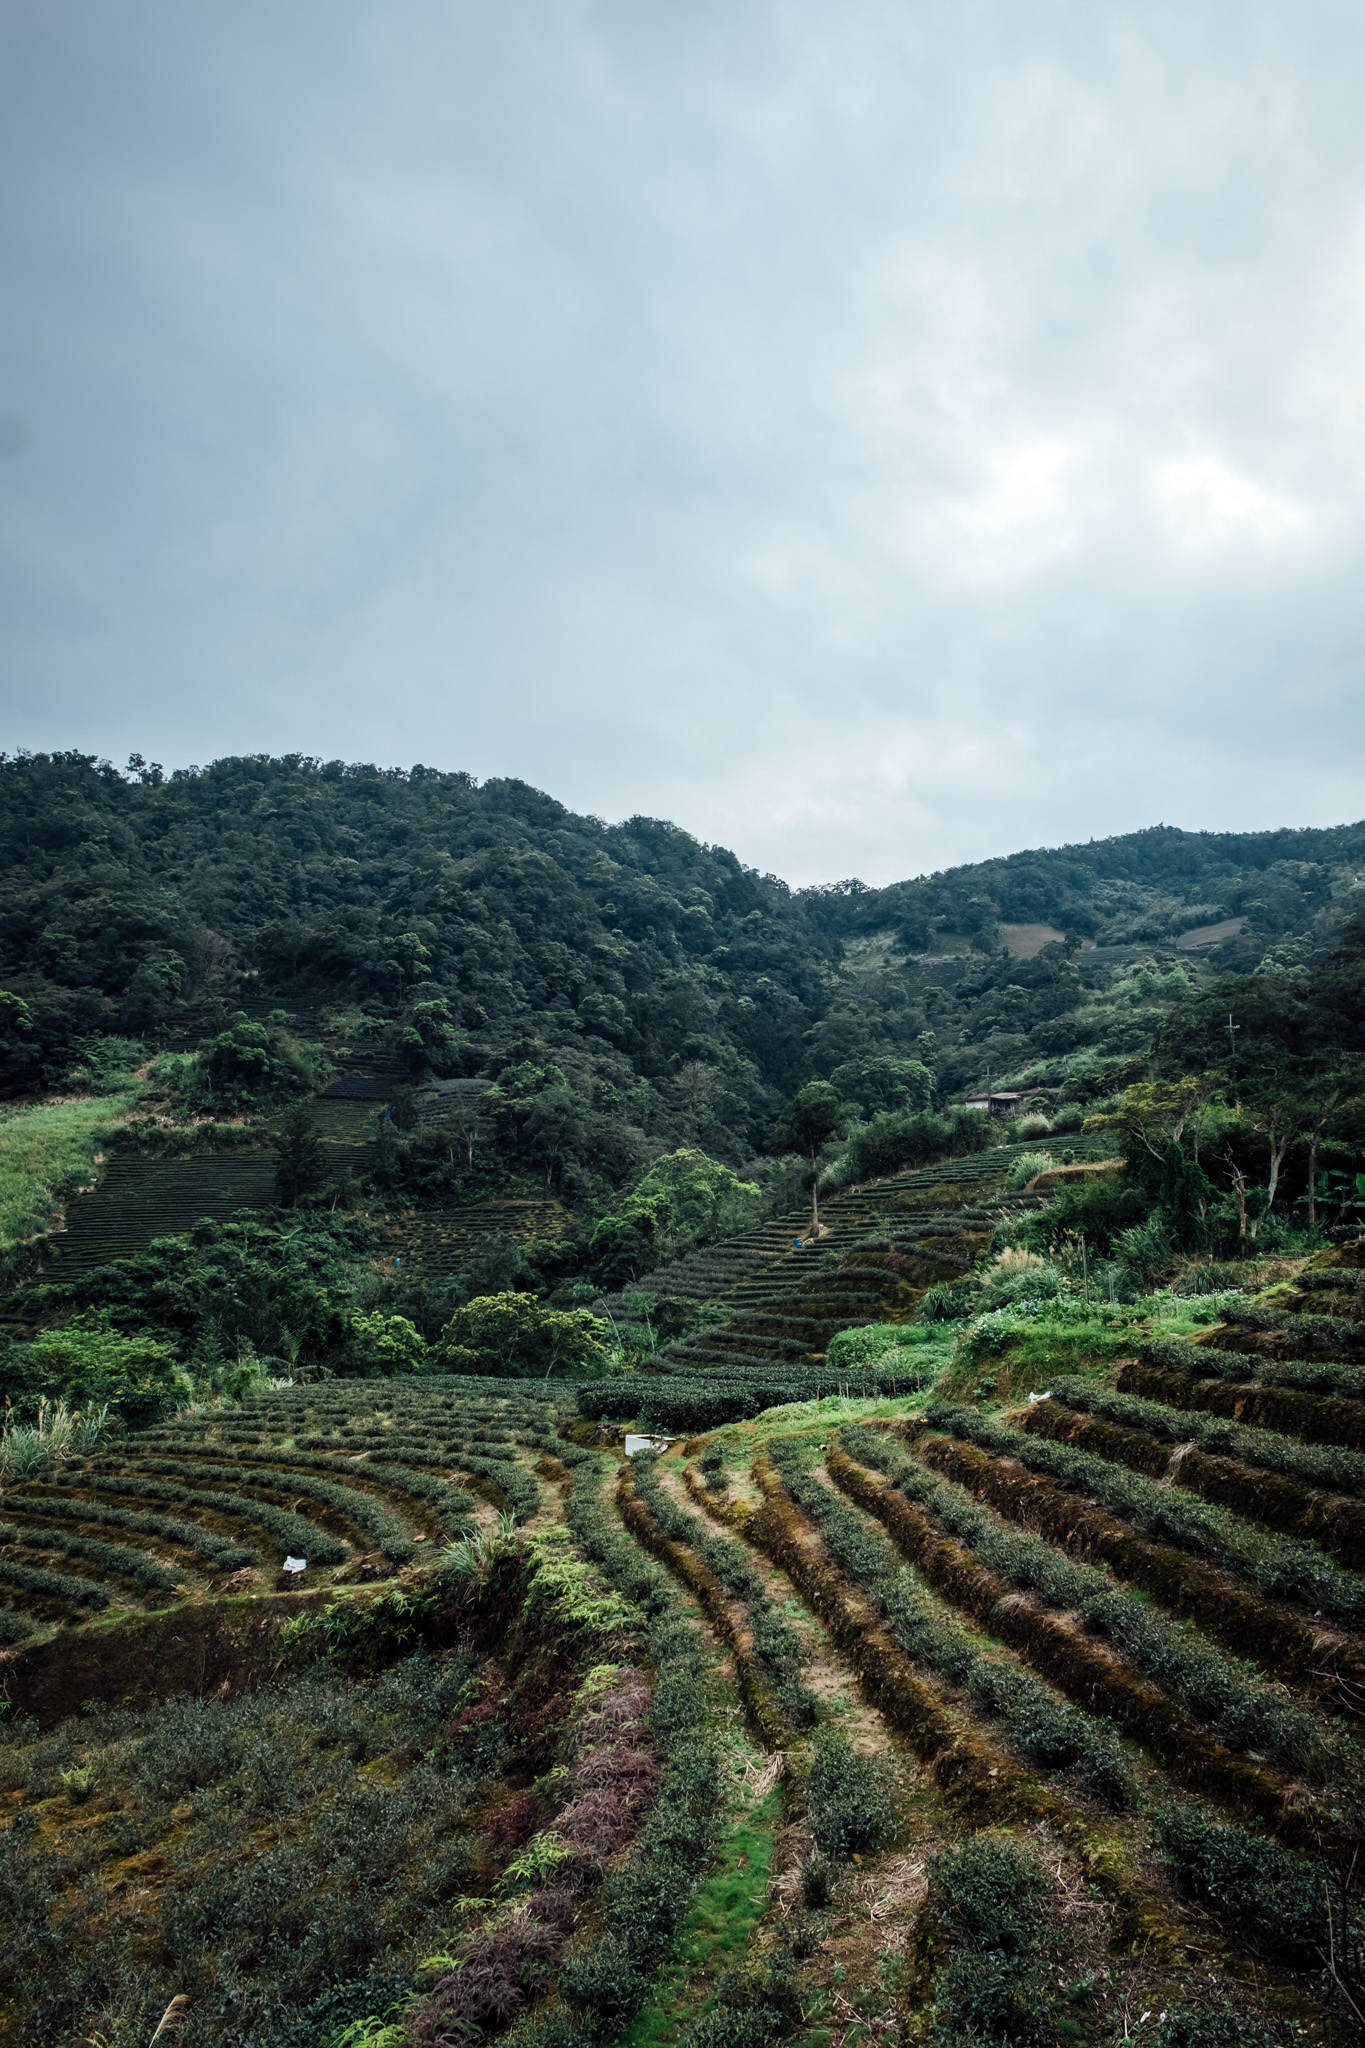 - Once you go up the mountain, you can see lots of tea plantations built along the terrain.